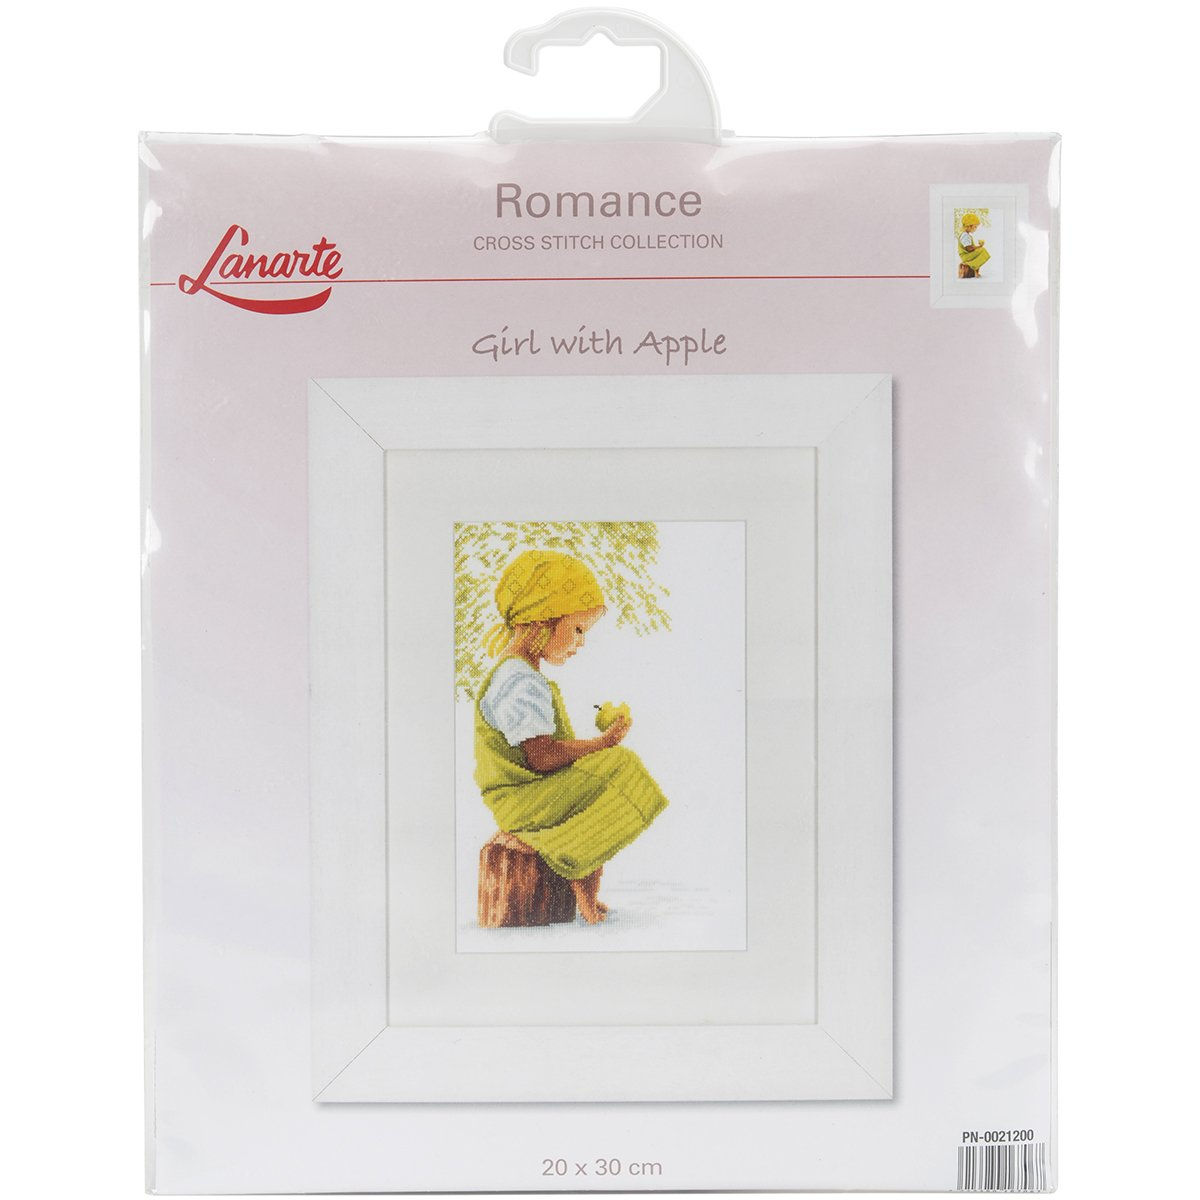 Vervaco LanArte Girl with Apple on Cotton Counted Cross Stitch Kit, 8 by 11.75 8 by 11.75 L0021200